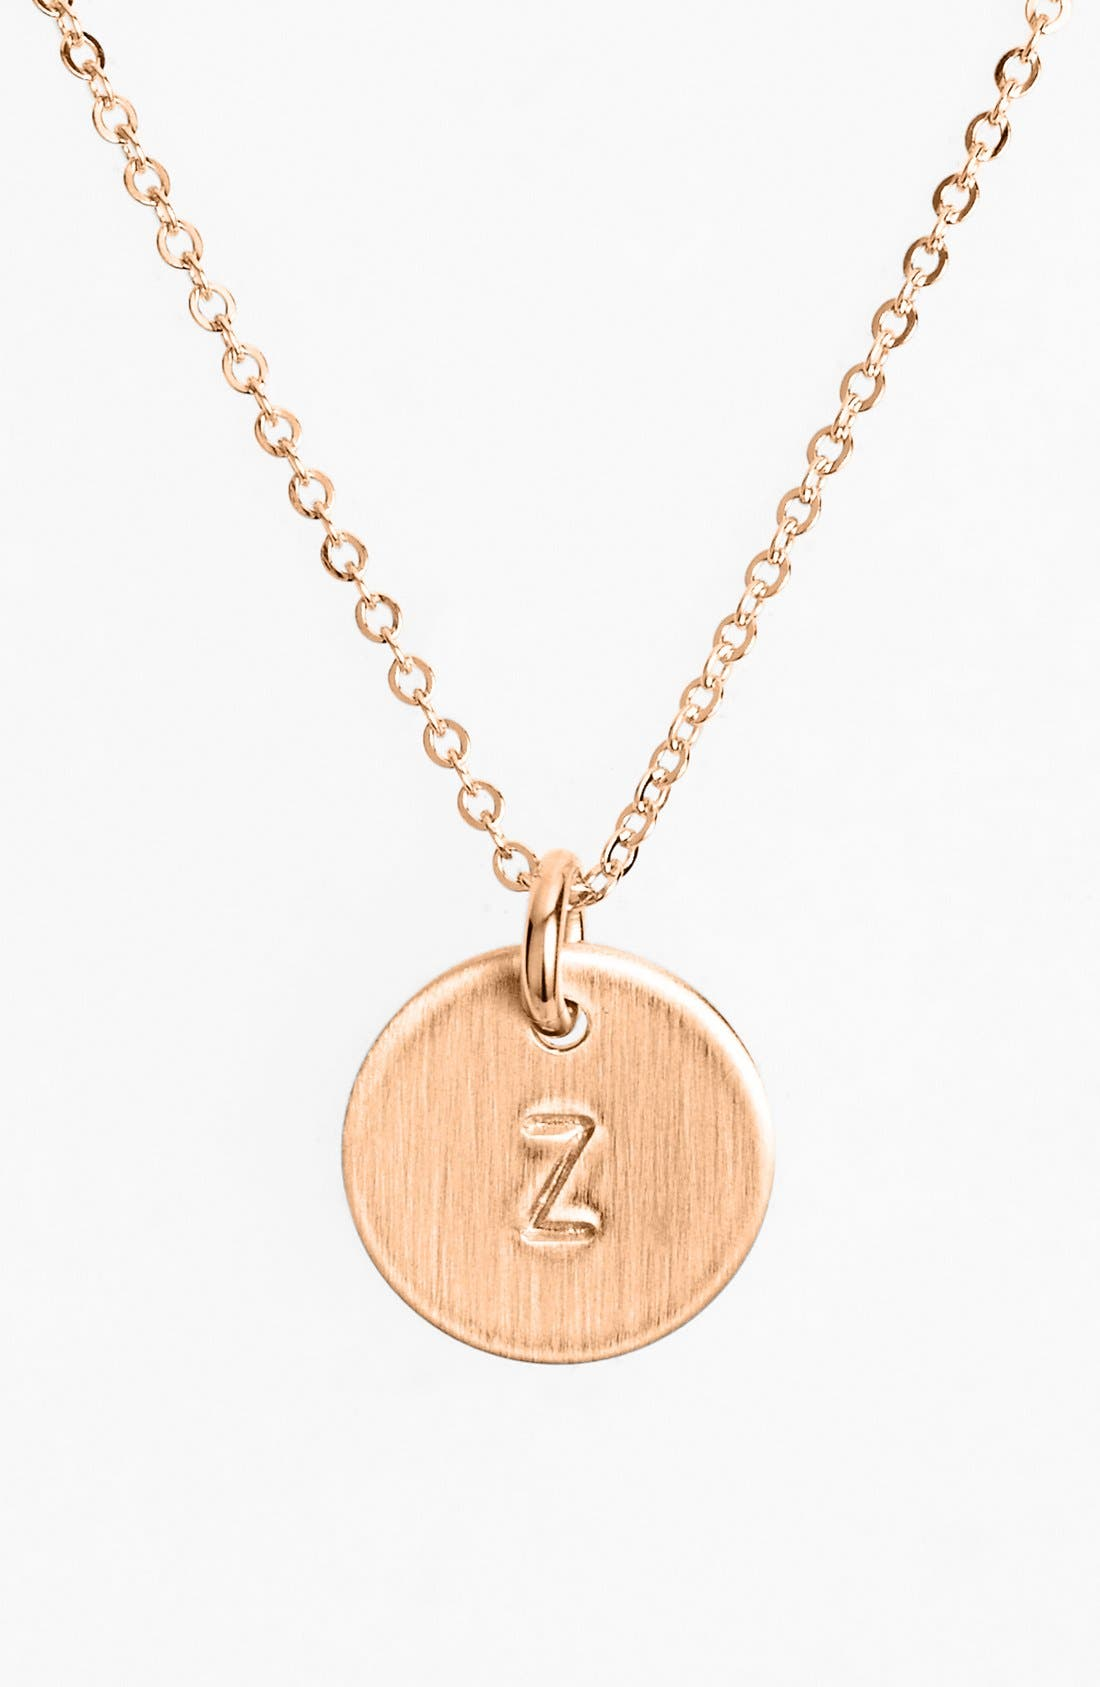 Main Image - Nashelle 14k-Rose Gold Fill Initial Mini Disc Necklace